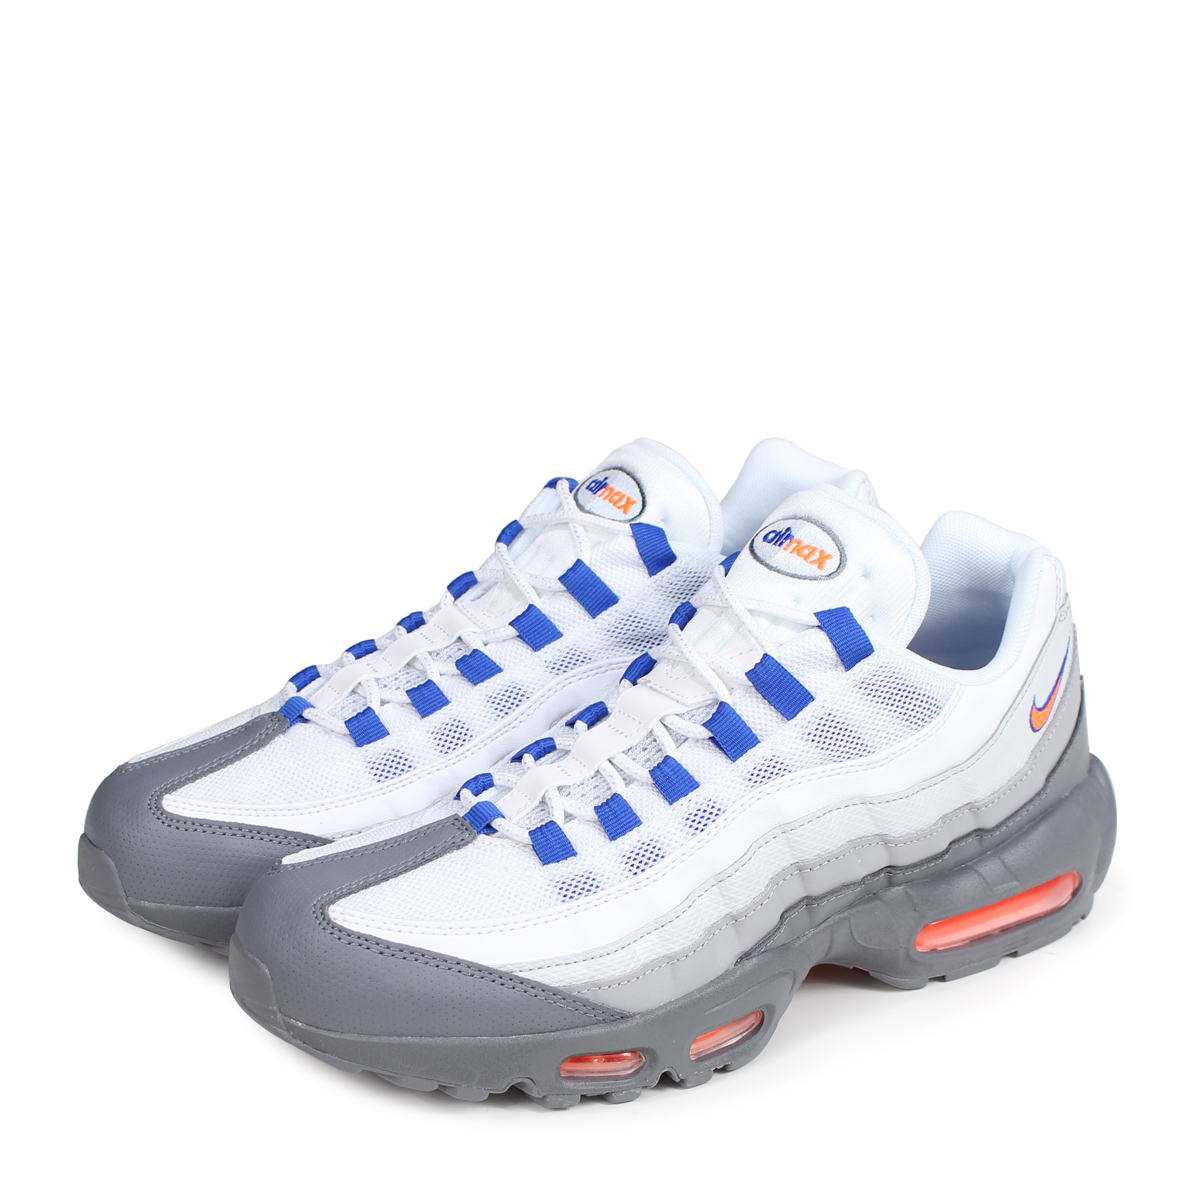 NIKE AIR MAX 95 ESSENTIAL Kie Ney AMAX 95 essential sneakers men 749,766-033 gray [load planned Shinnyu load in reservation product 6/29 containing] [186]